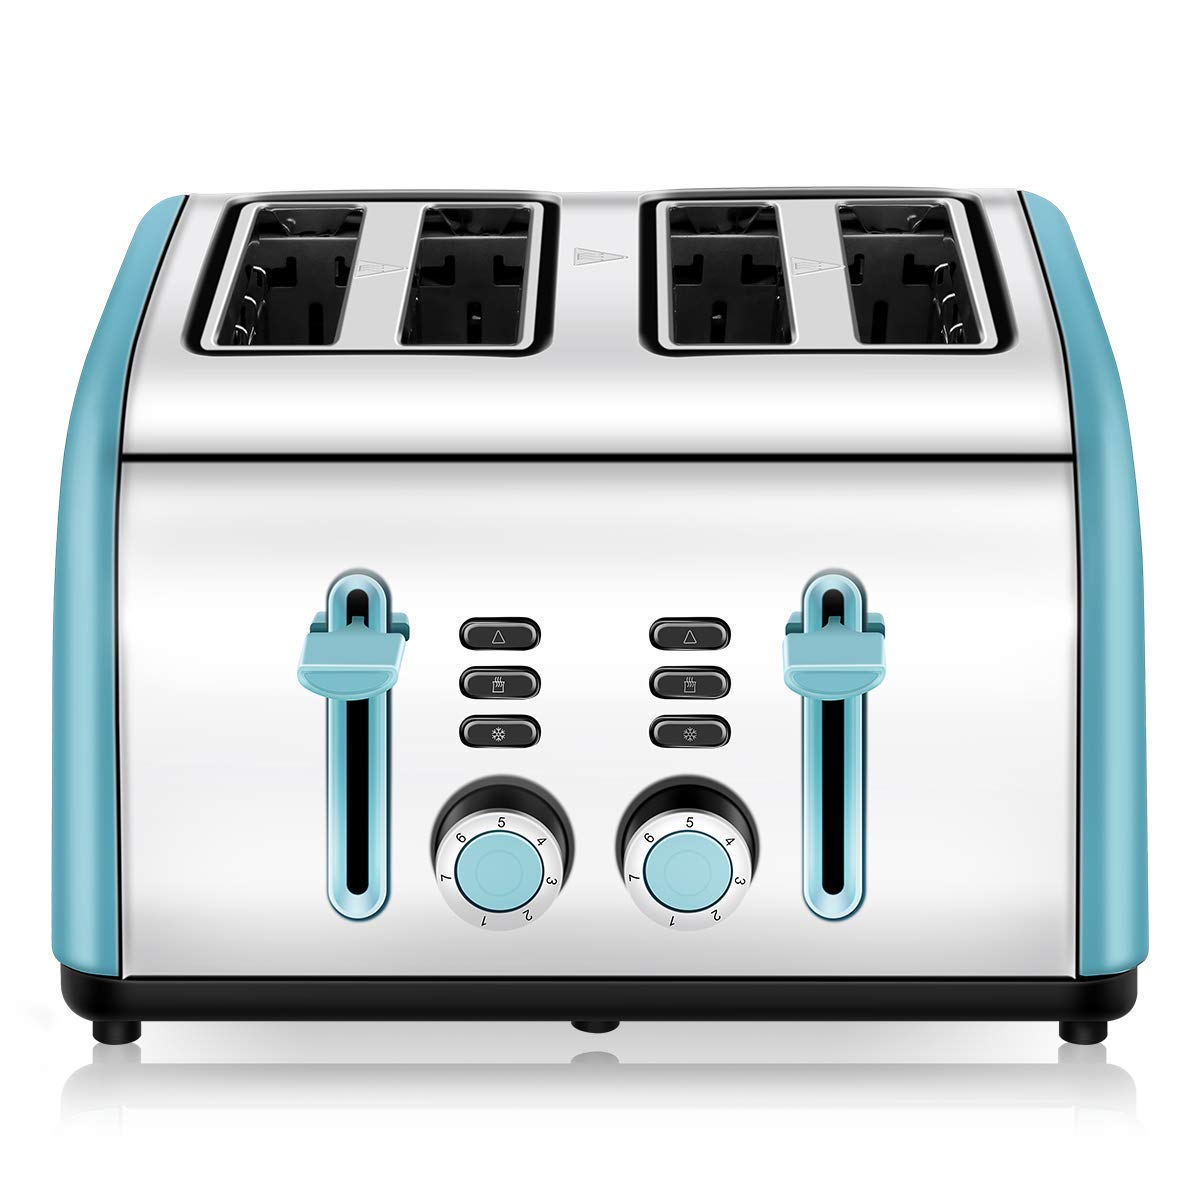 4-Slice Toaster, CUSINAID 4 Wide Slots Stainless Steel Toasters with Reheat Defrost Cancel Function, 7-Shade Setting, Blue by CUSINAID